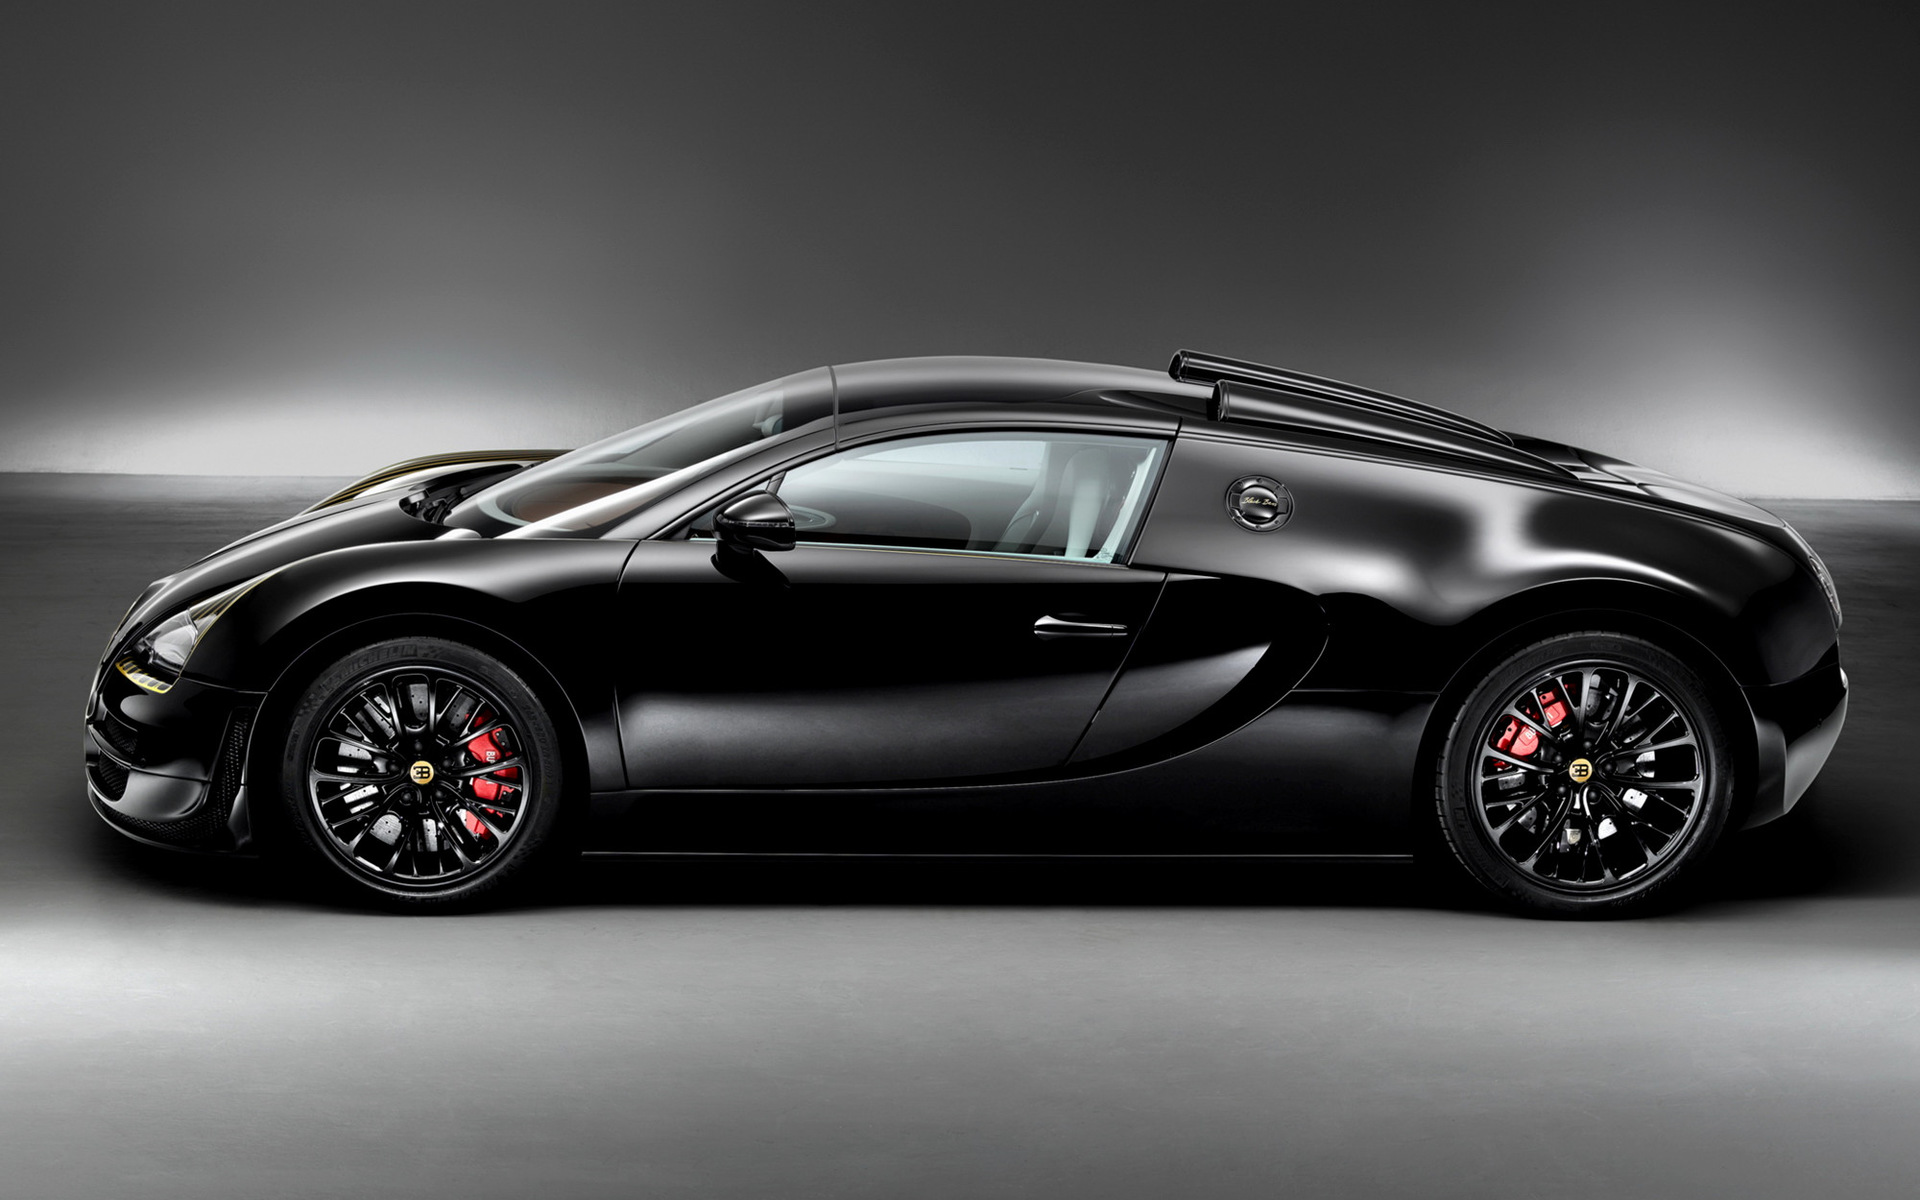 bugatti-veyron-grand-sport-vitesse-black-bess-car-wallpaper-9967 Cozy Bugatti Veyron Grand Sport Vitesse Engine Cars Trend